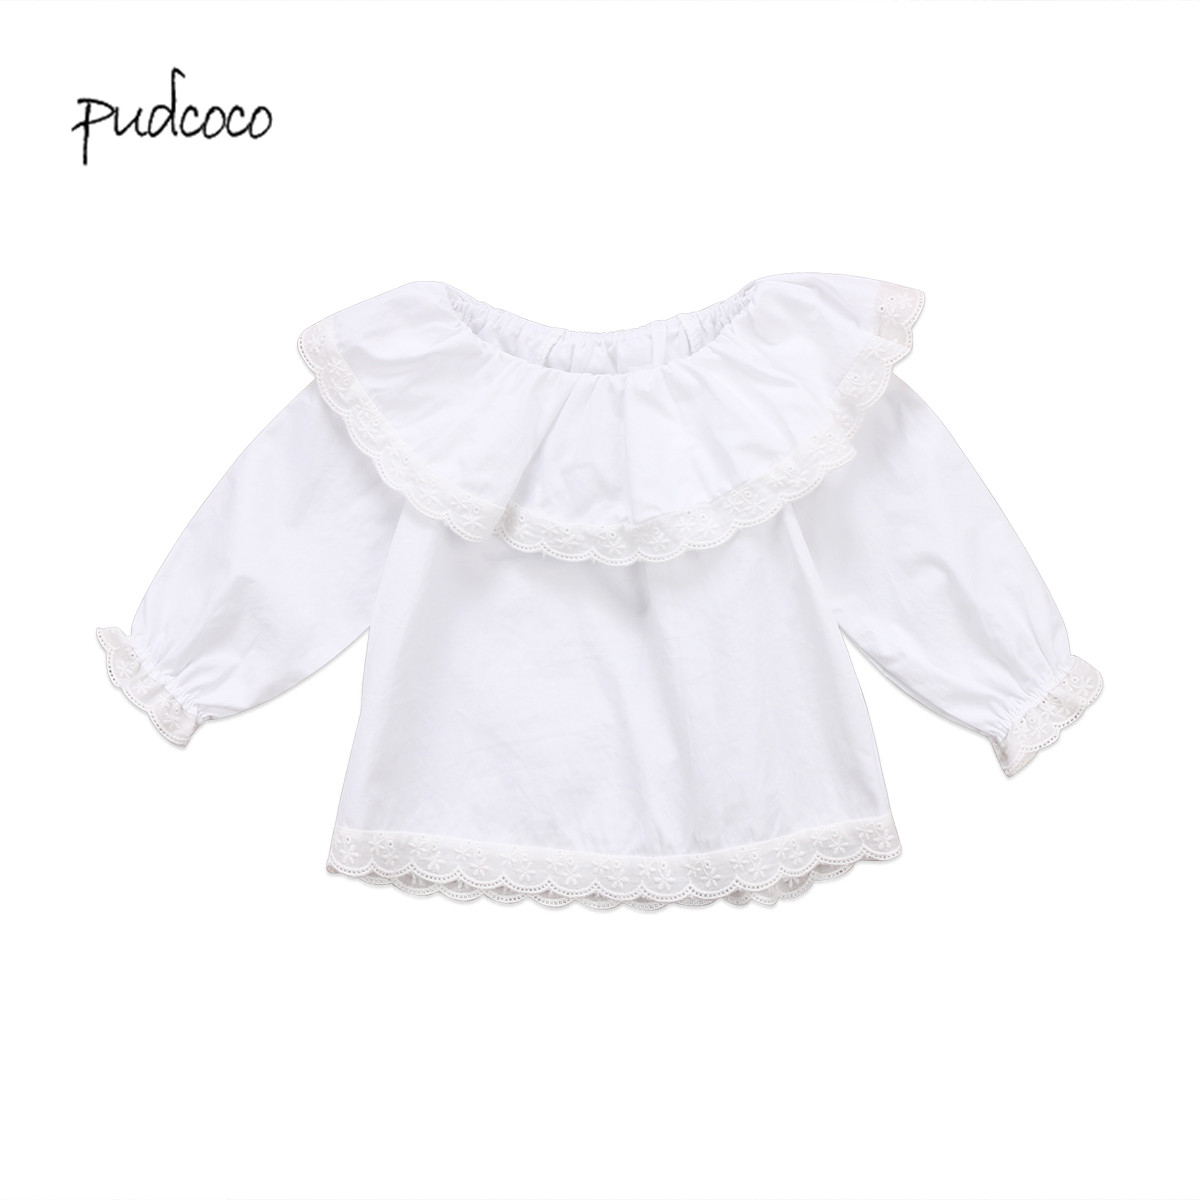 Pudcoco 2019 New Brand Newborn <font><b>Baby</b></font> Girls Lace Collar <font><b>Long</b></font> <font><b>Sleeve</b></font> Ruffles T-<font><b>shirt</b></font> Clothes image